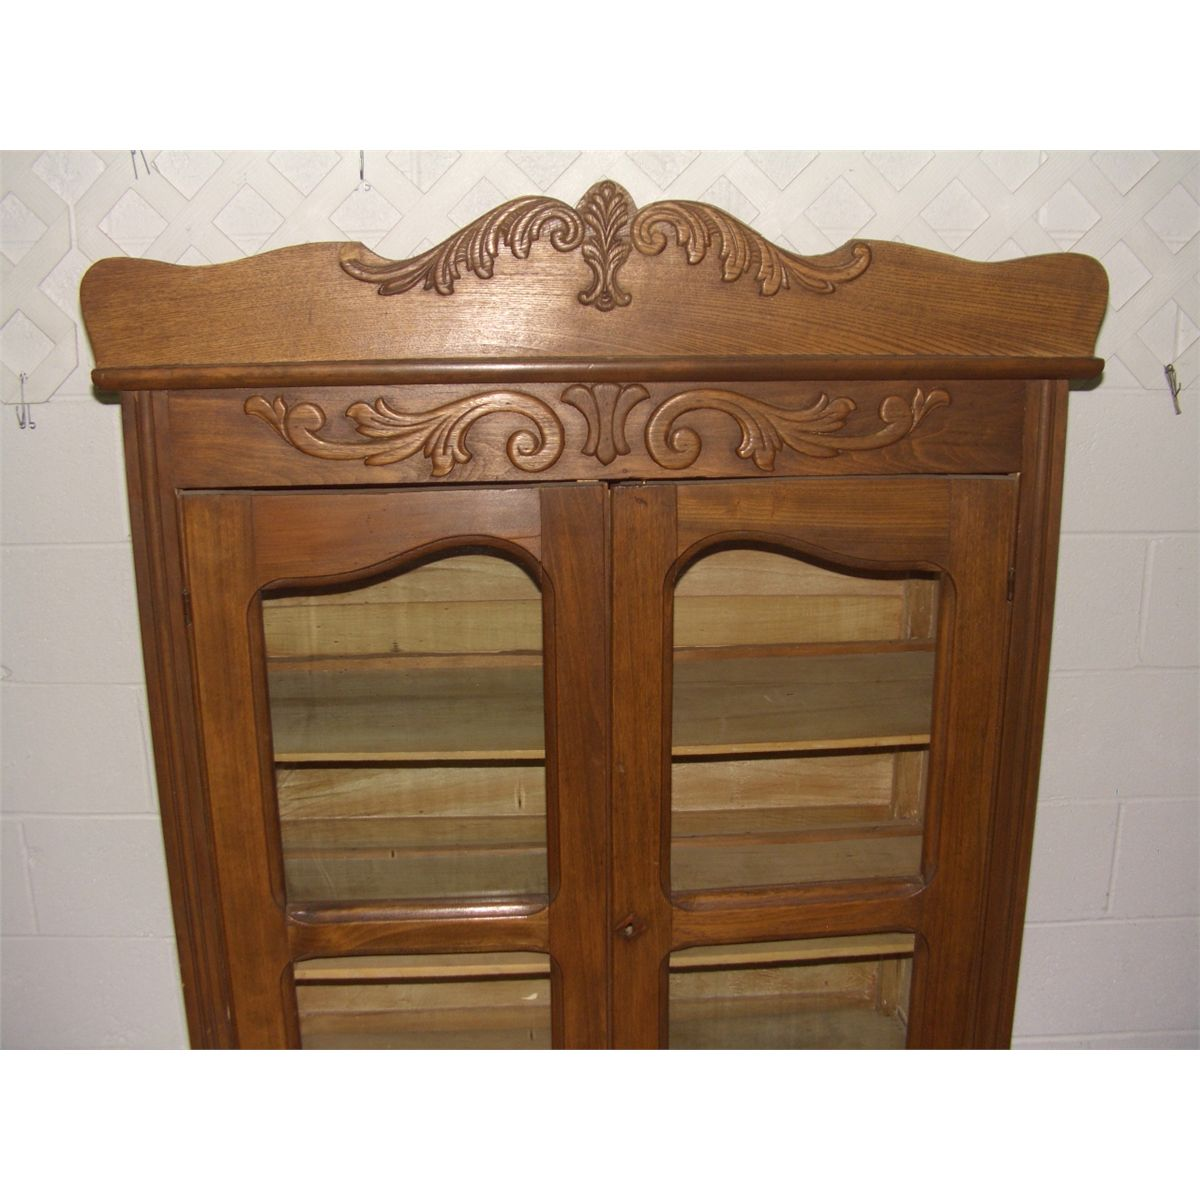 antique oak kitchen cabinet antique oak kitchen cabinet with applied carving ssr 10665